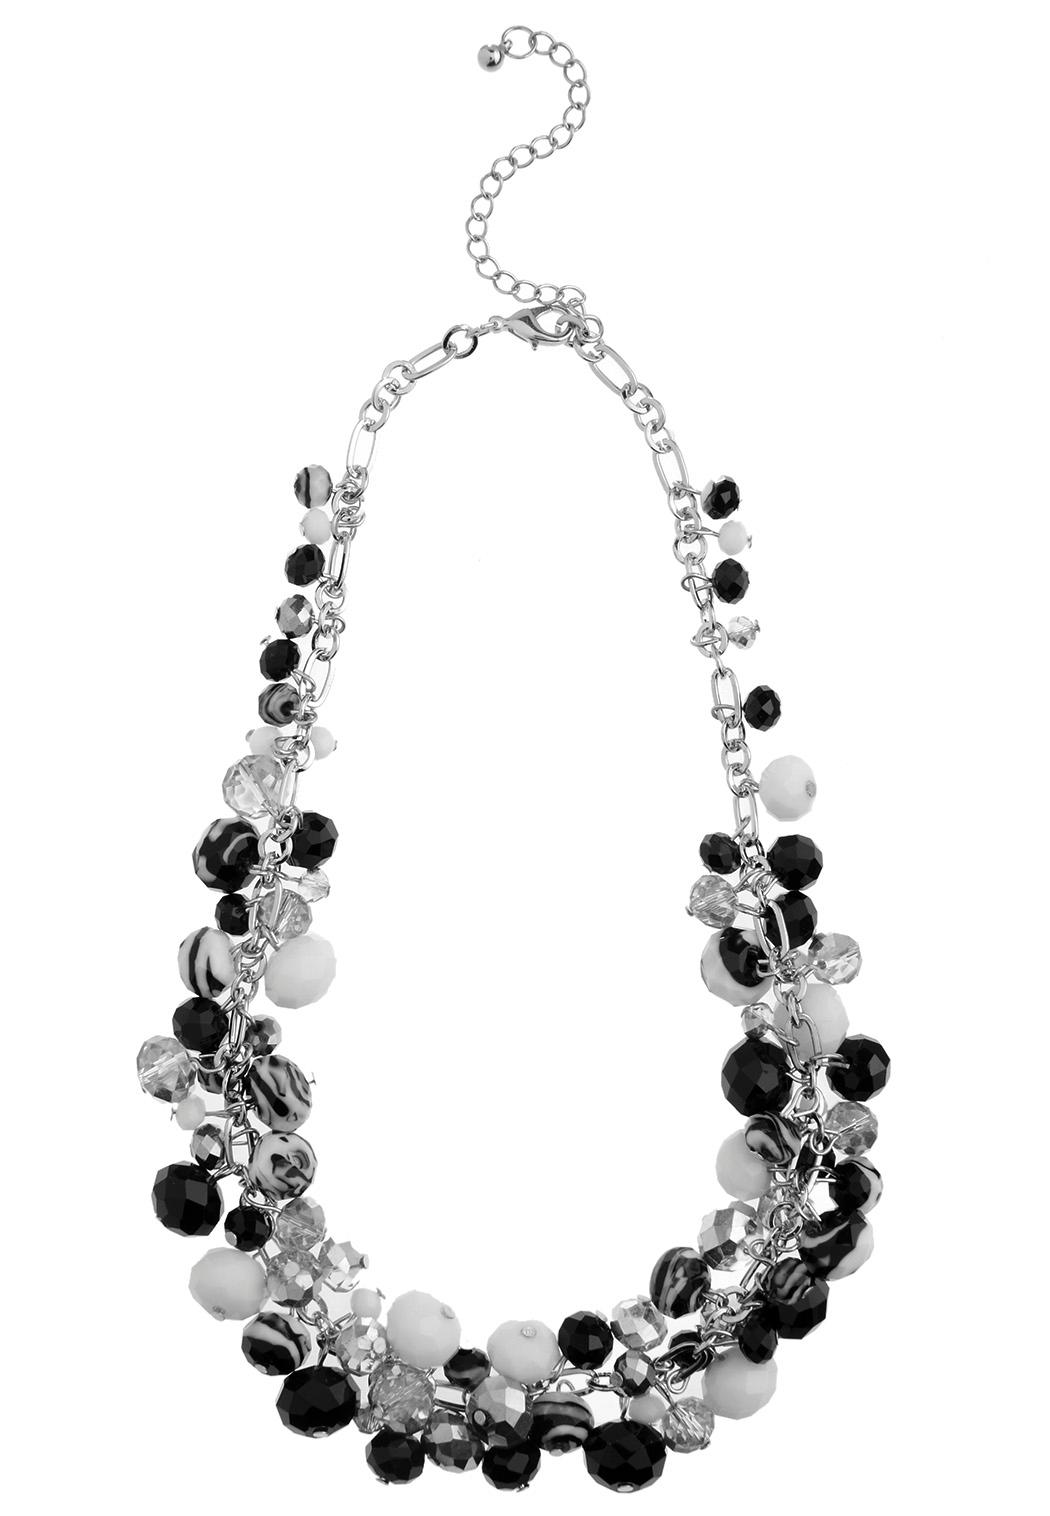 Glass Bead Cluster Necklace Necklaces Cato Fashions